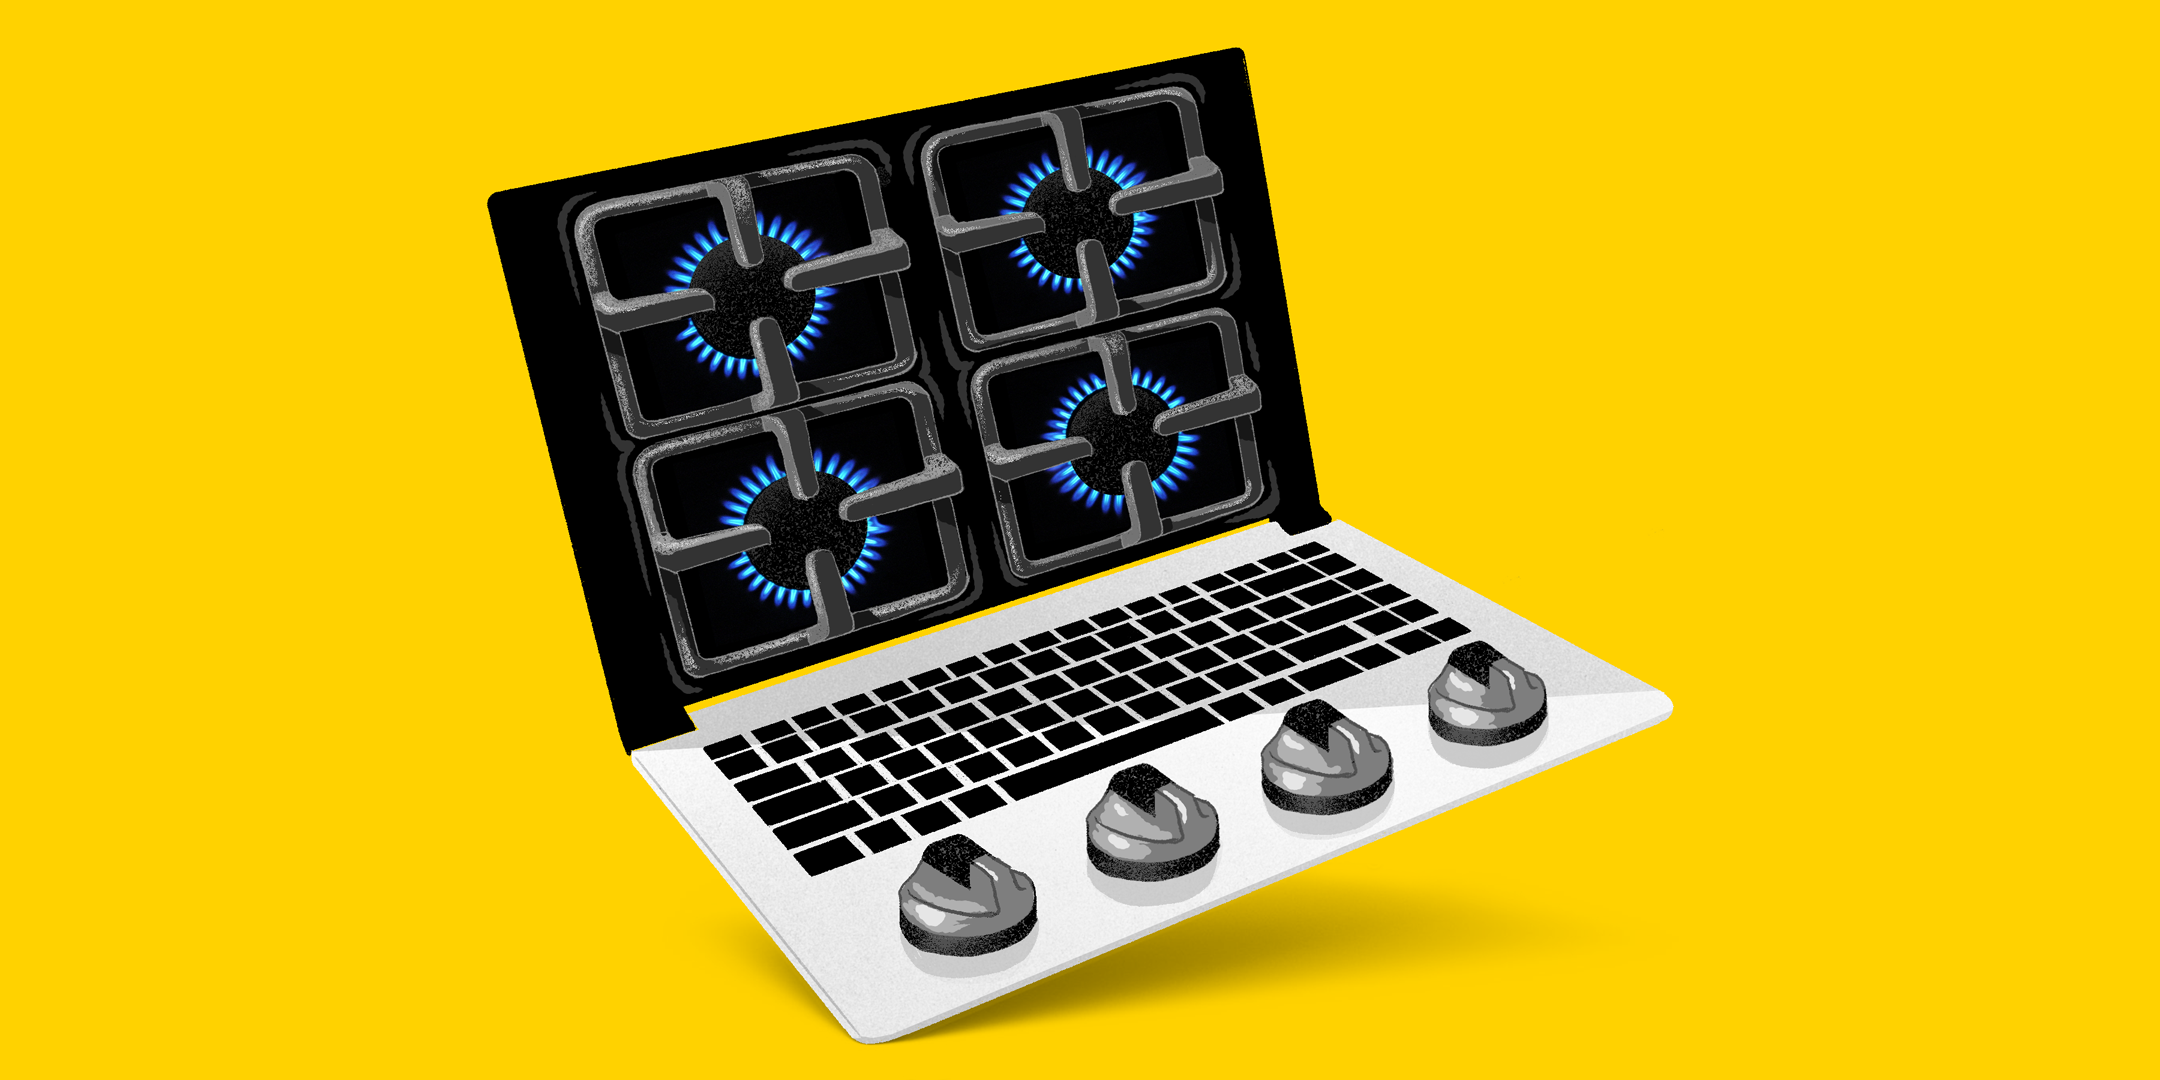 Laptop with stovetop burners on the screen and stovetop knobs on the base of the laptop